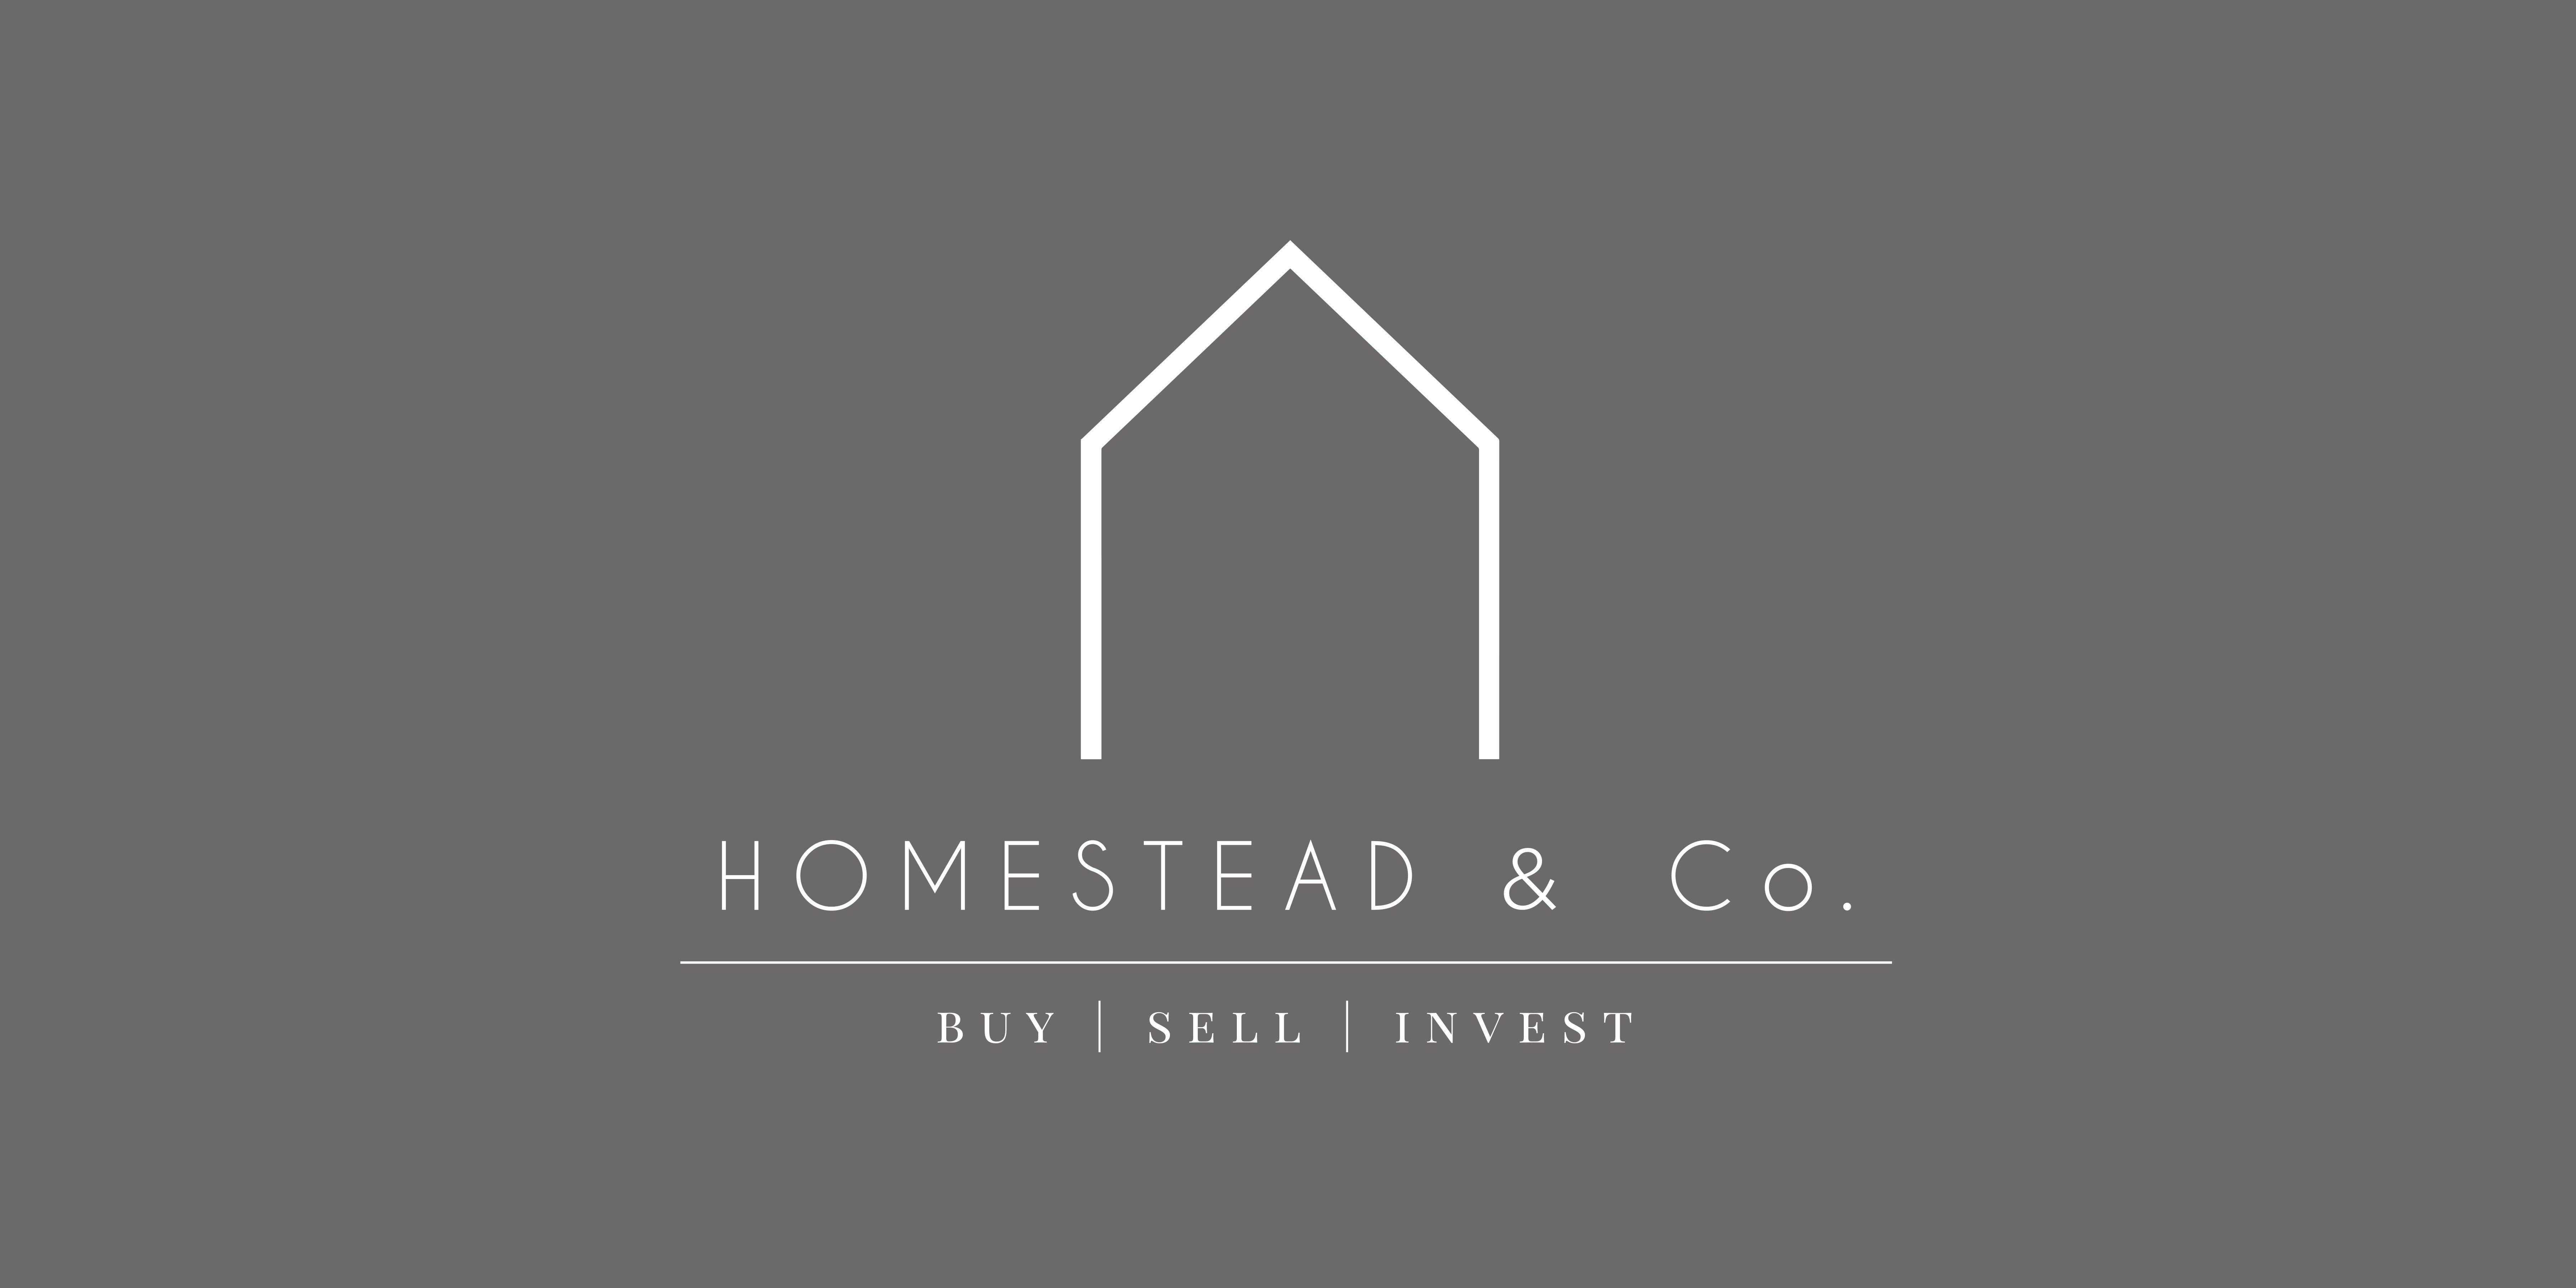 Homestead & Co logo